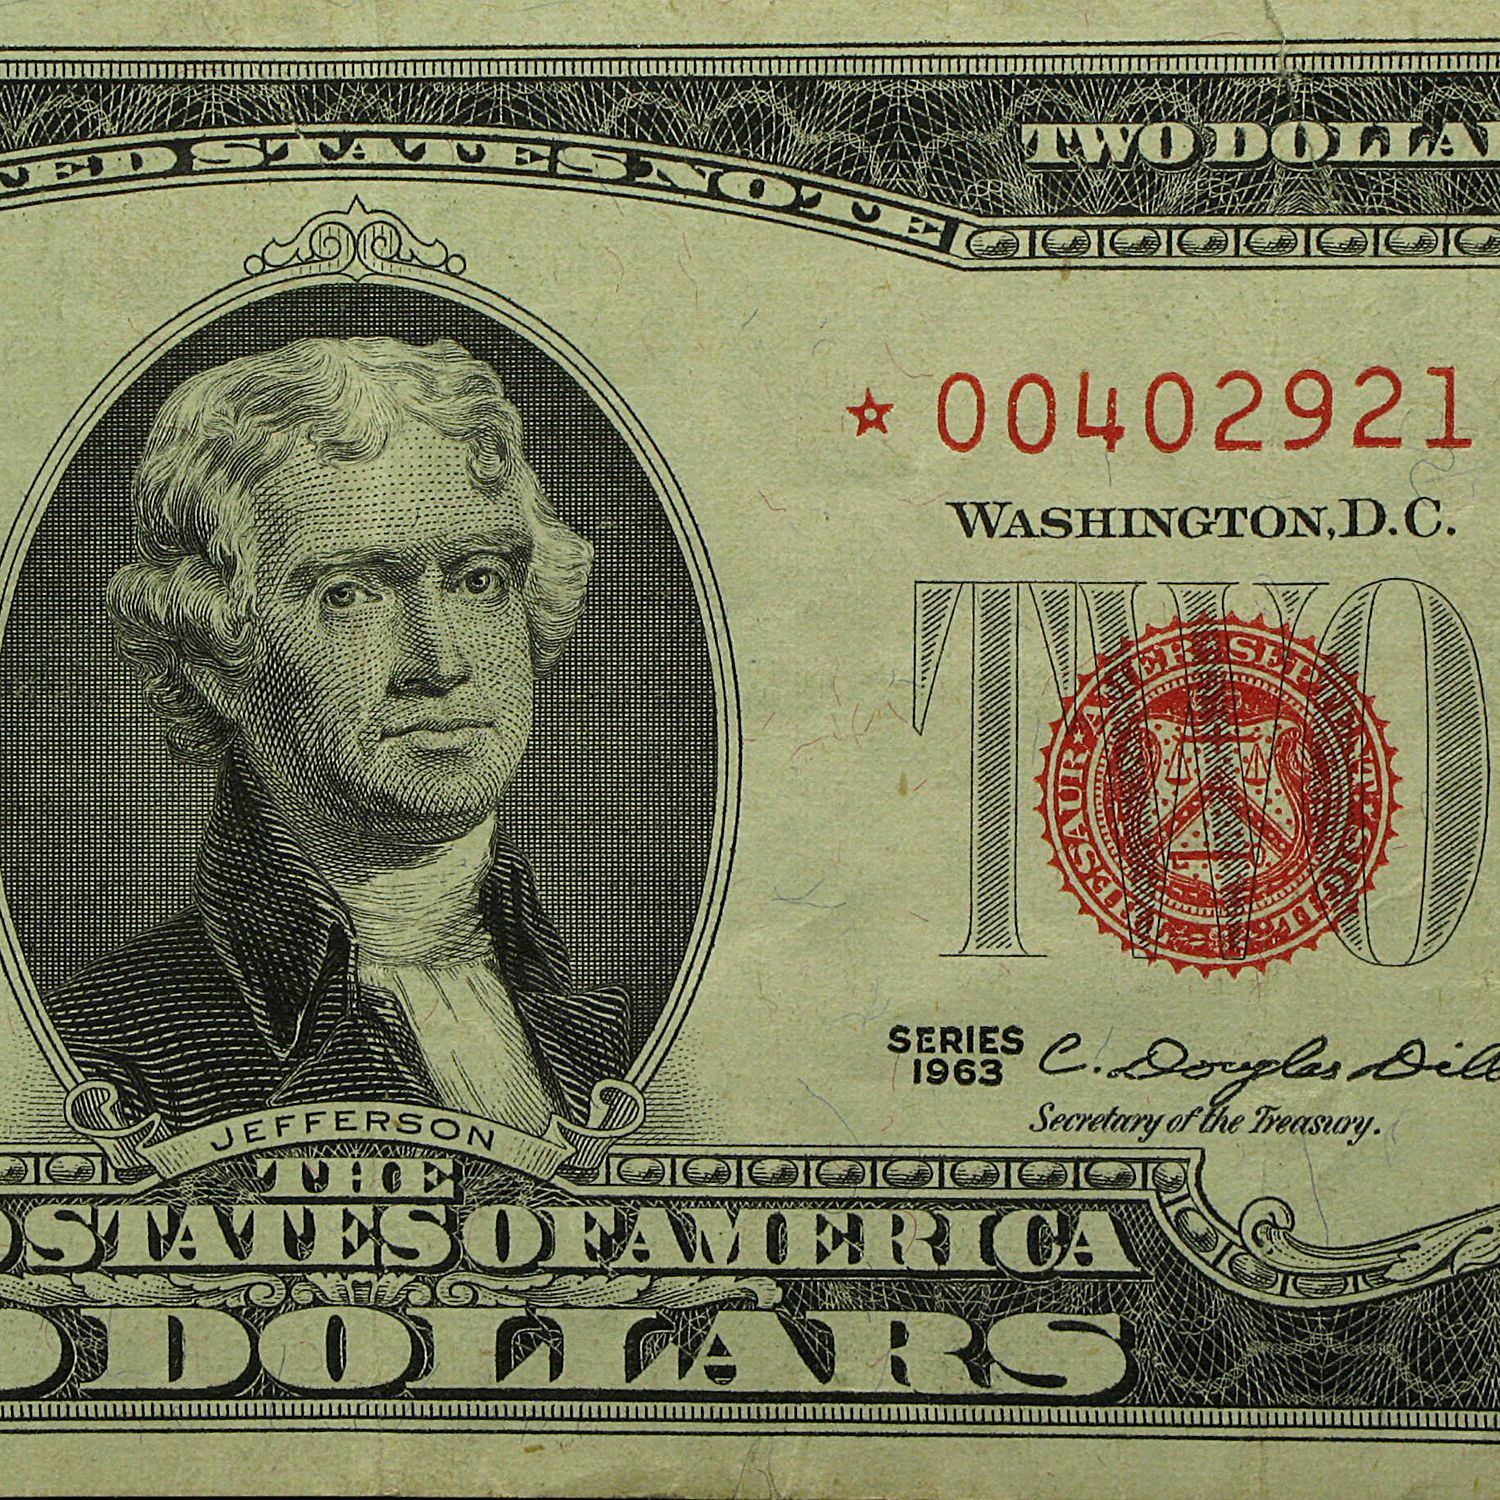 1963* $2.00 (RED SEALS) Star Notes (Very Good) - (Very Fine)